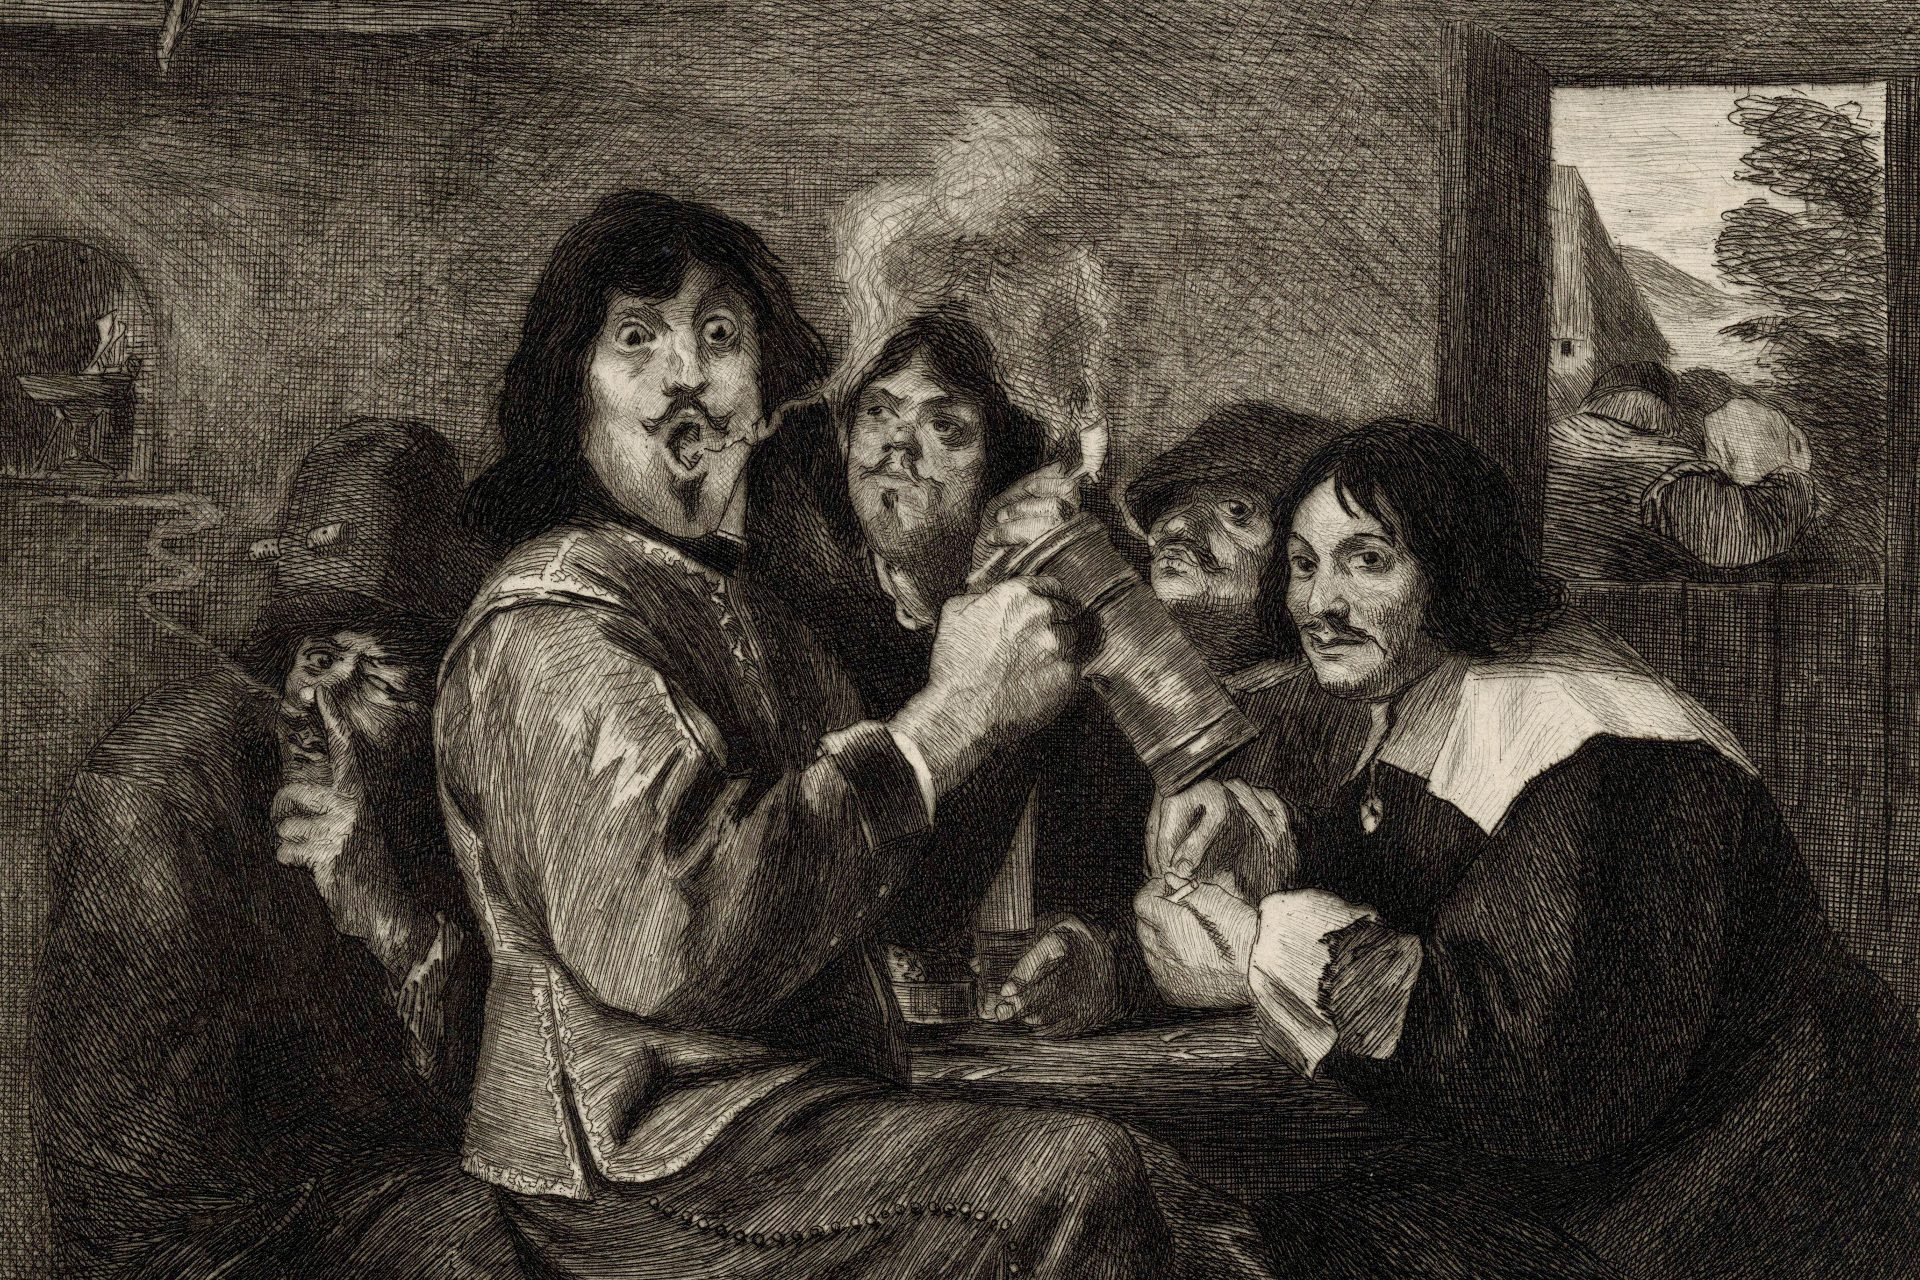 After Adriaen Brouwer, The Smokers, 19th century. Etching.